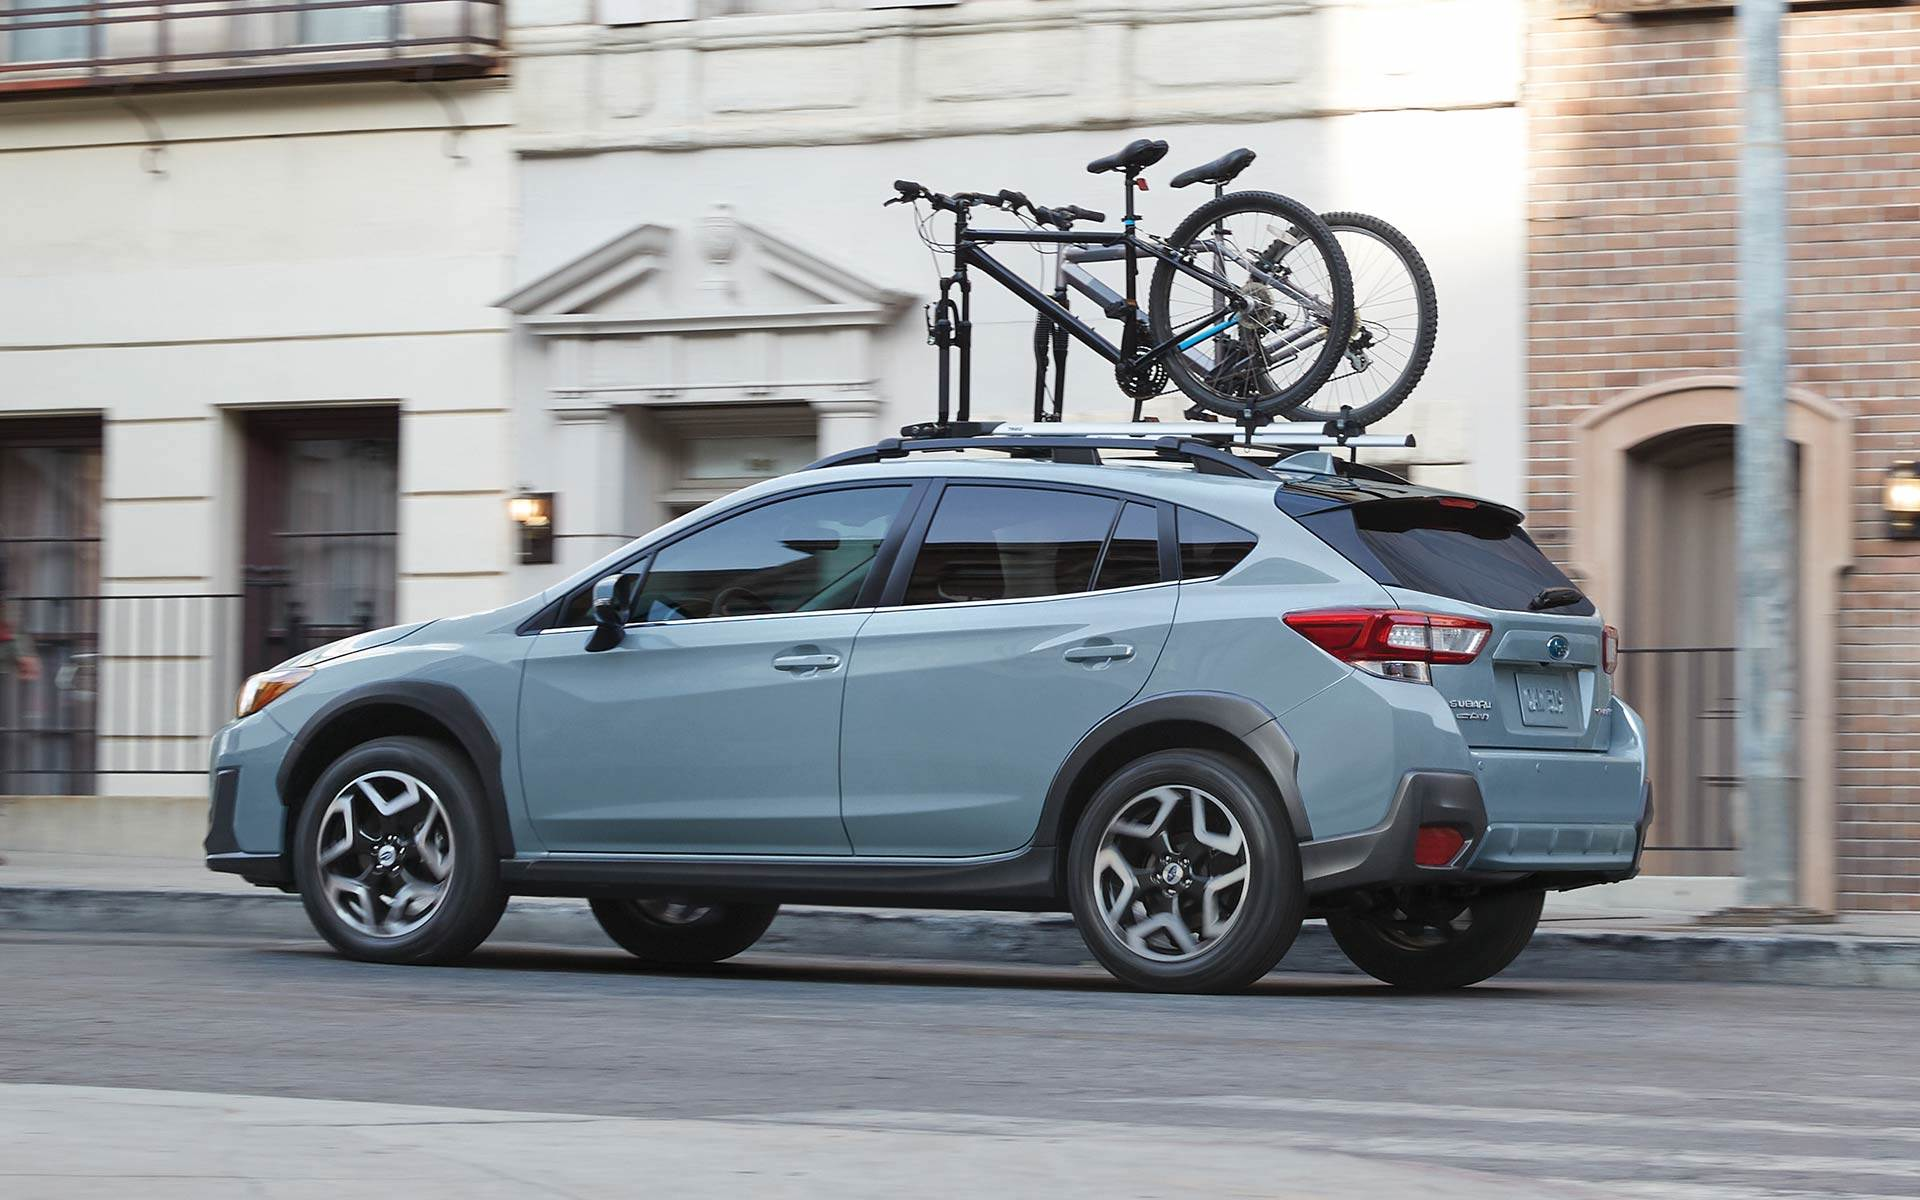 The Crosstrek Has Joined Outback Wrx Impreza And Legacy In Earning This Amazing Award Learn More About Spectacular All New 2018 Subaru